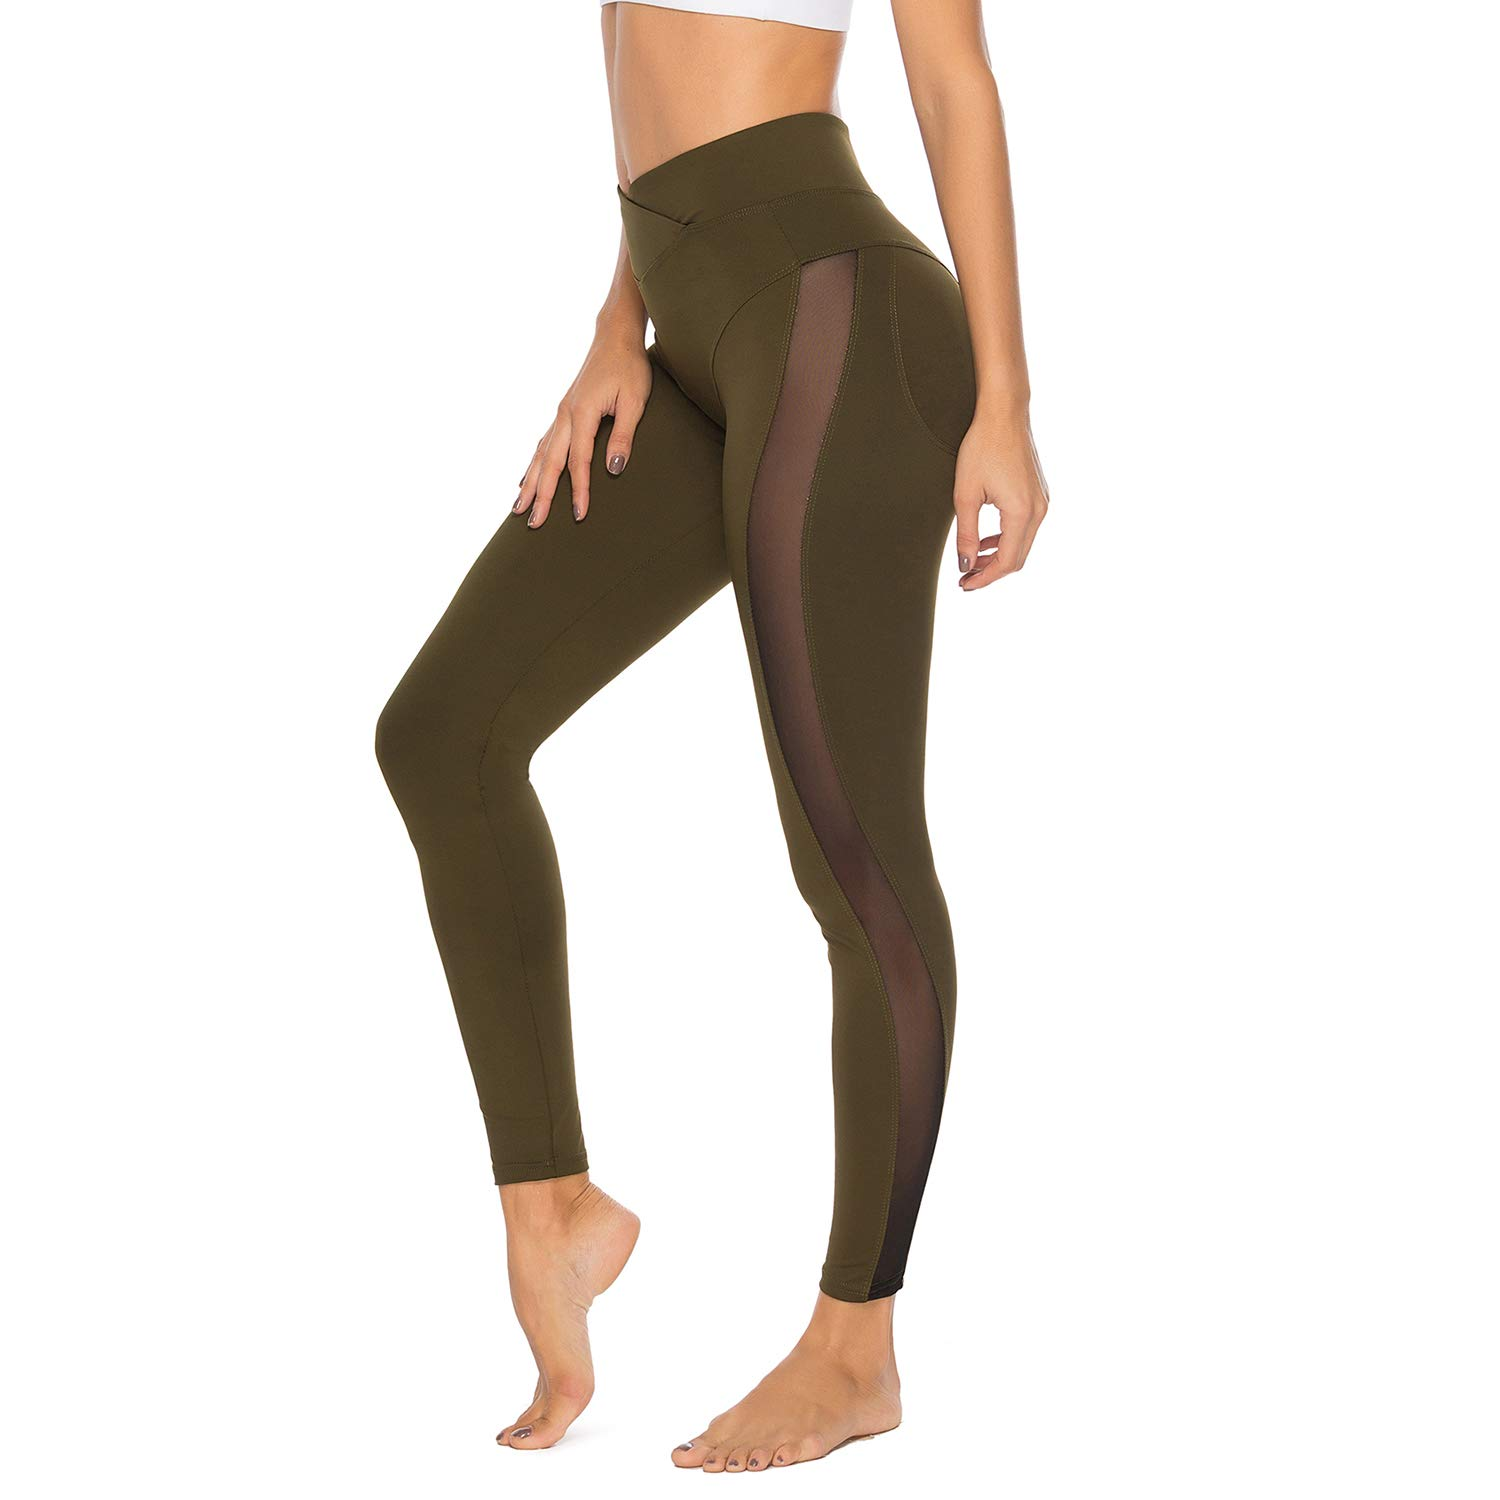 22c402f1ce4b6e FITTOO Women's Mesh Workout Leggings Panel Sheer Yoga Pants Gym Tights at  Amazon Women's Clothing store: